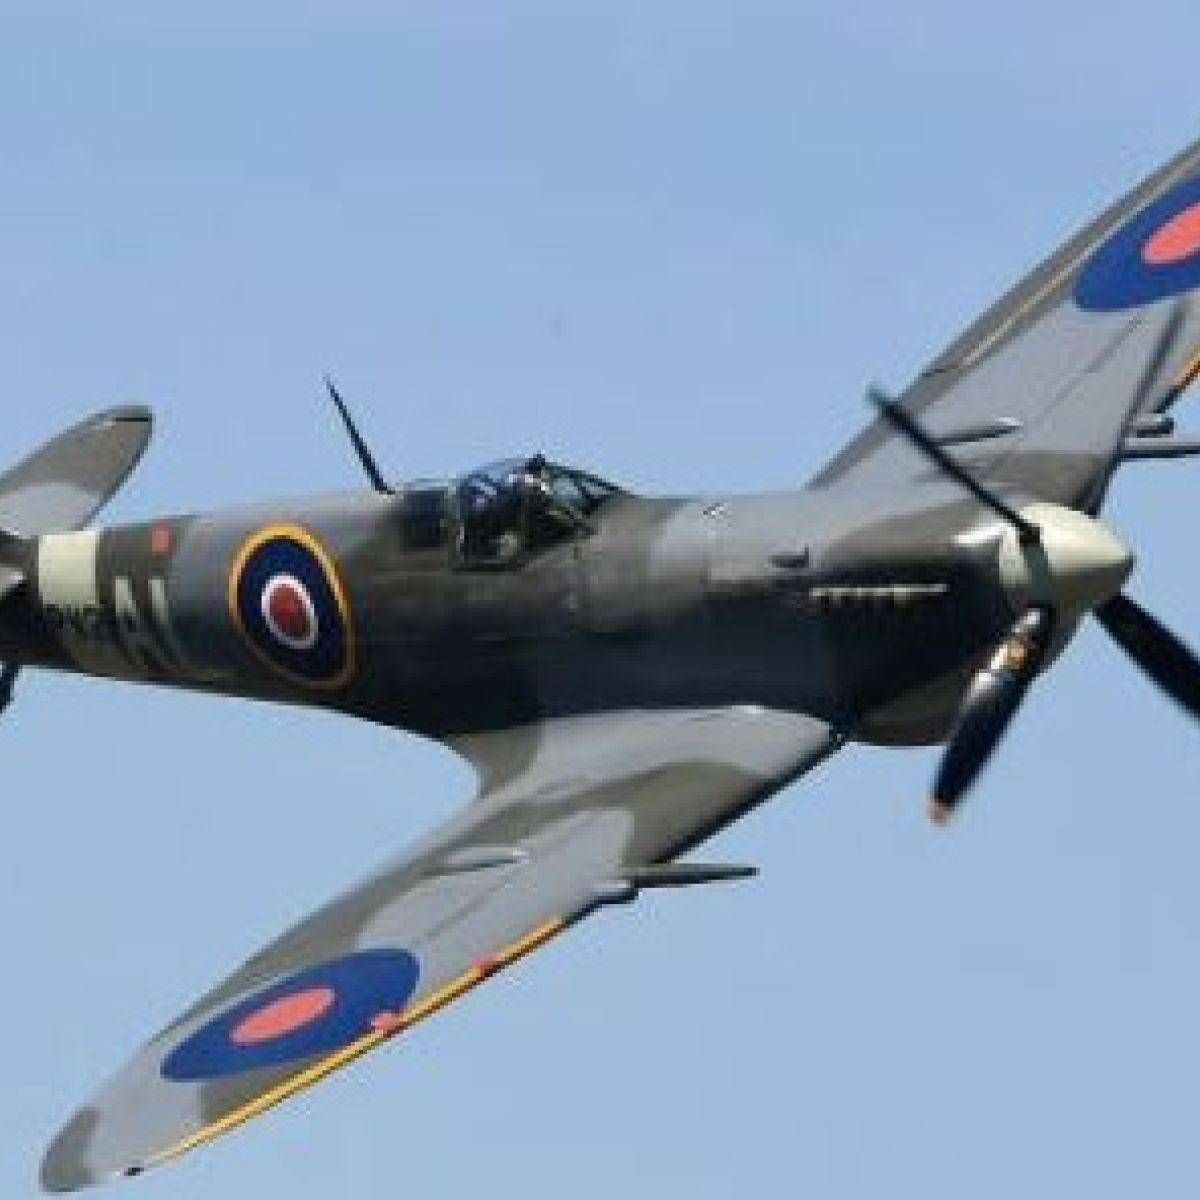 Wartime Spitfire remains are unearthed from Monaghan field